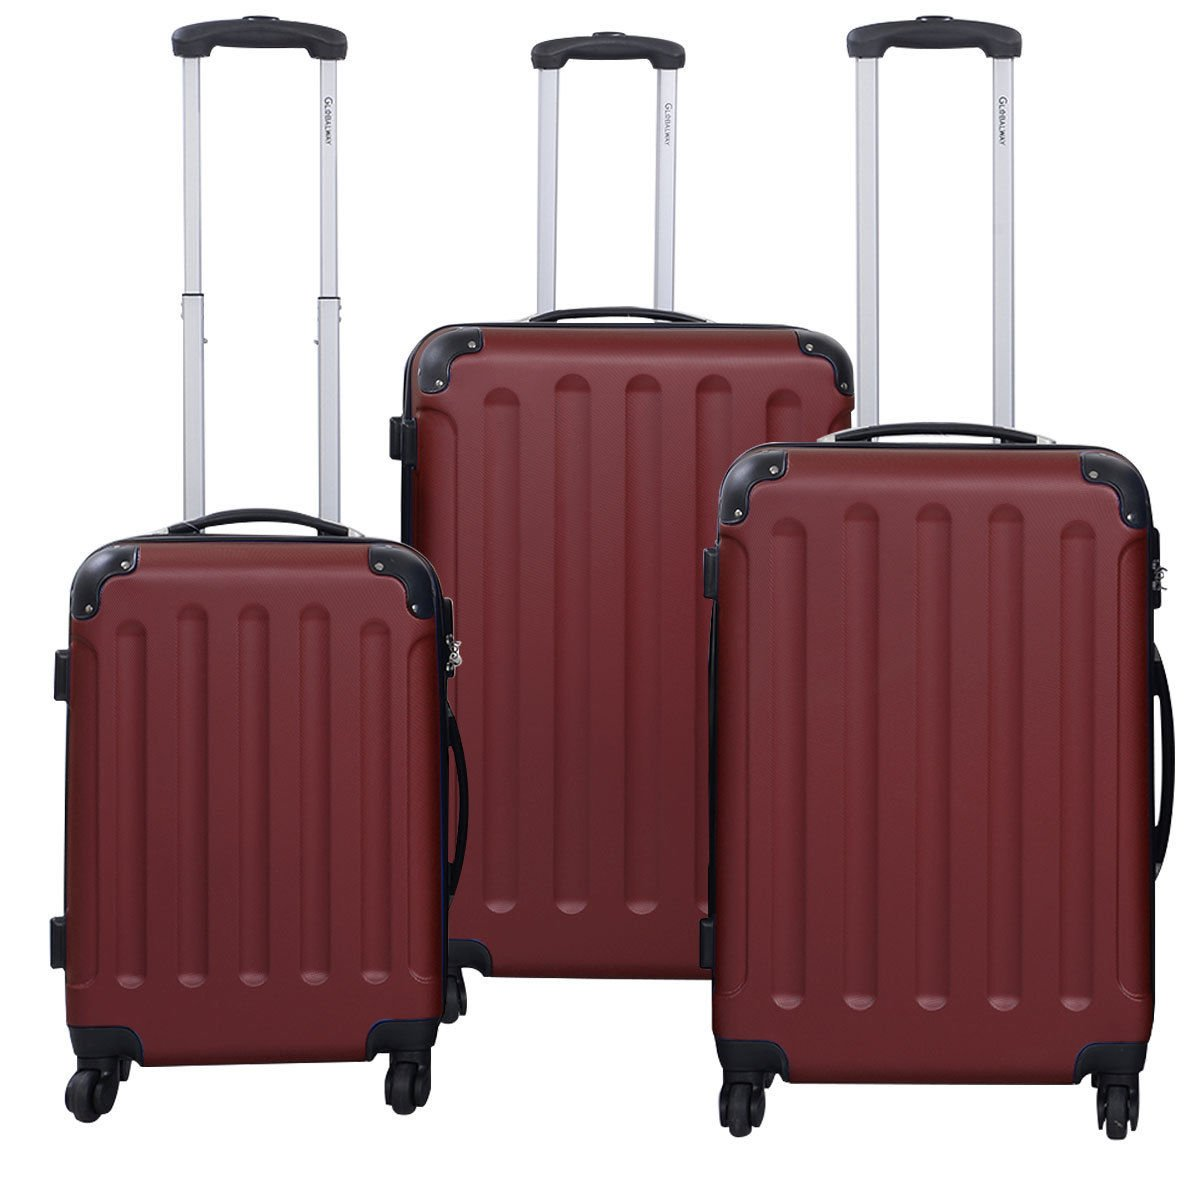 3 Pcs Luggage Travel Set Bag ABS+PC Trolley Suitcase Wine red by tamsun